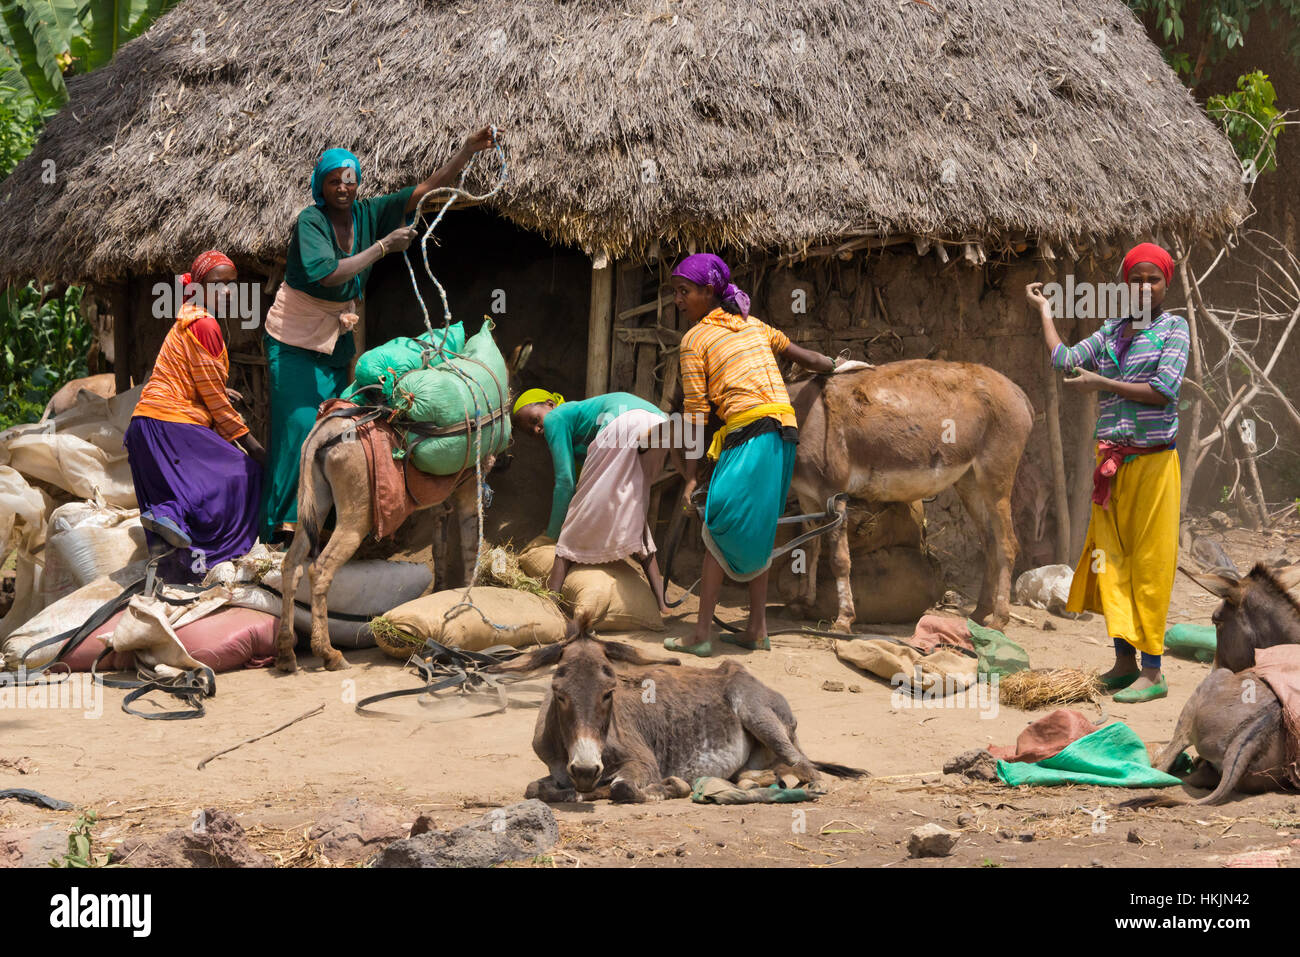 People unloading donkeys in the village, Ethiopia - Stock Image